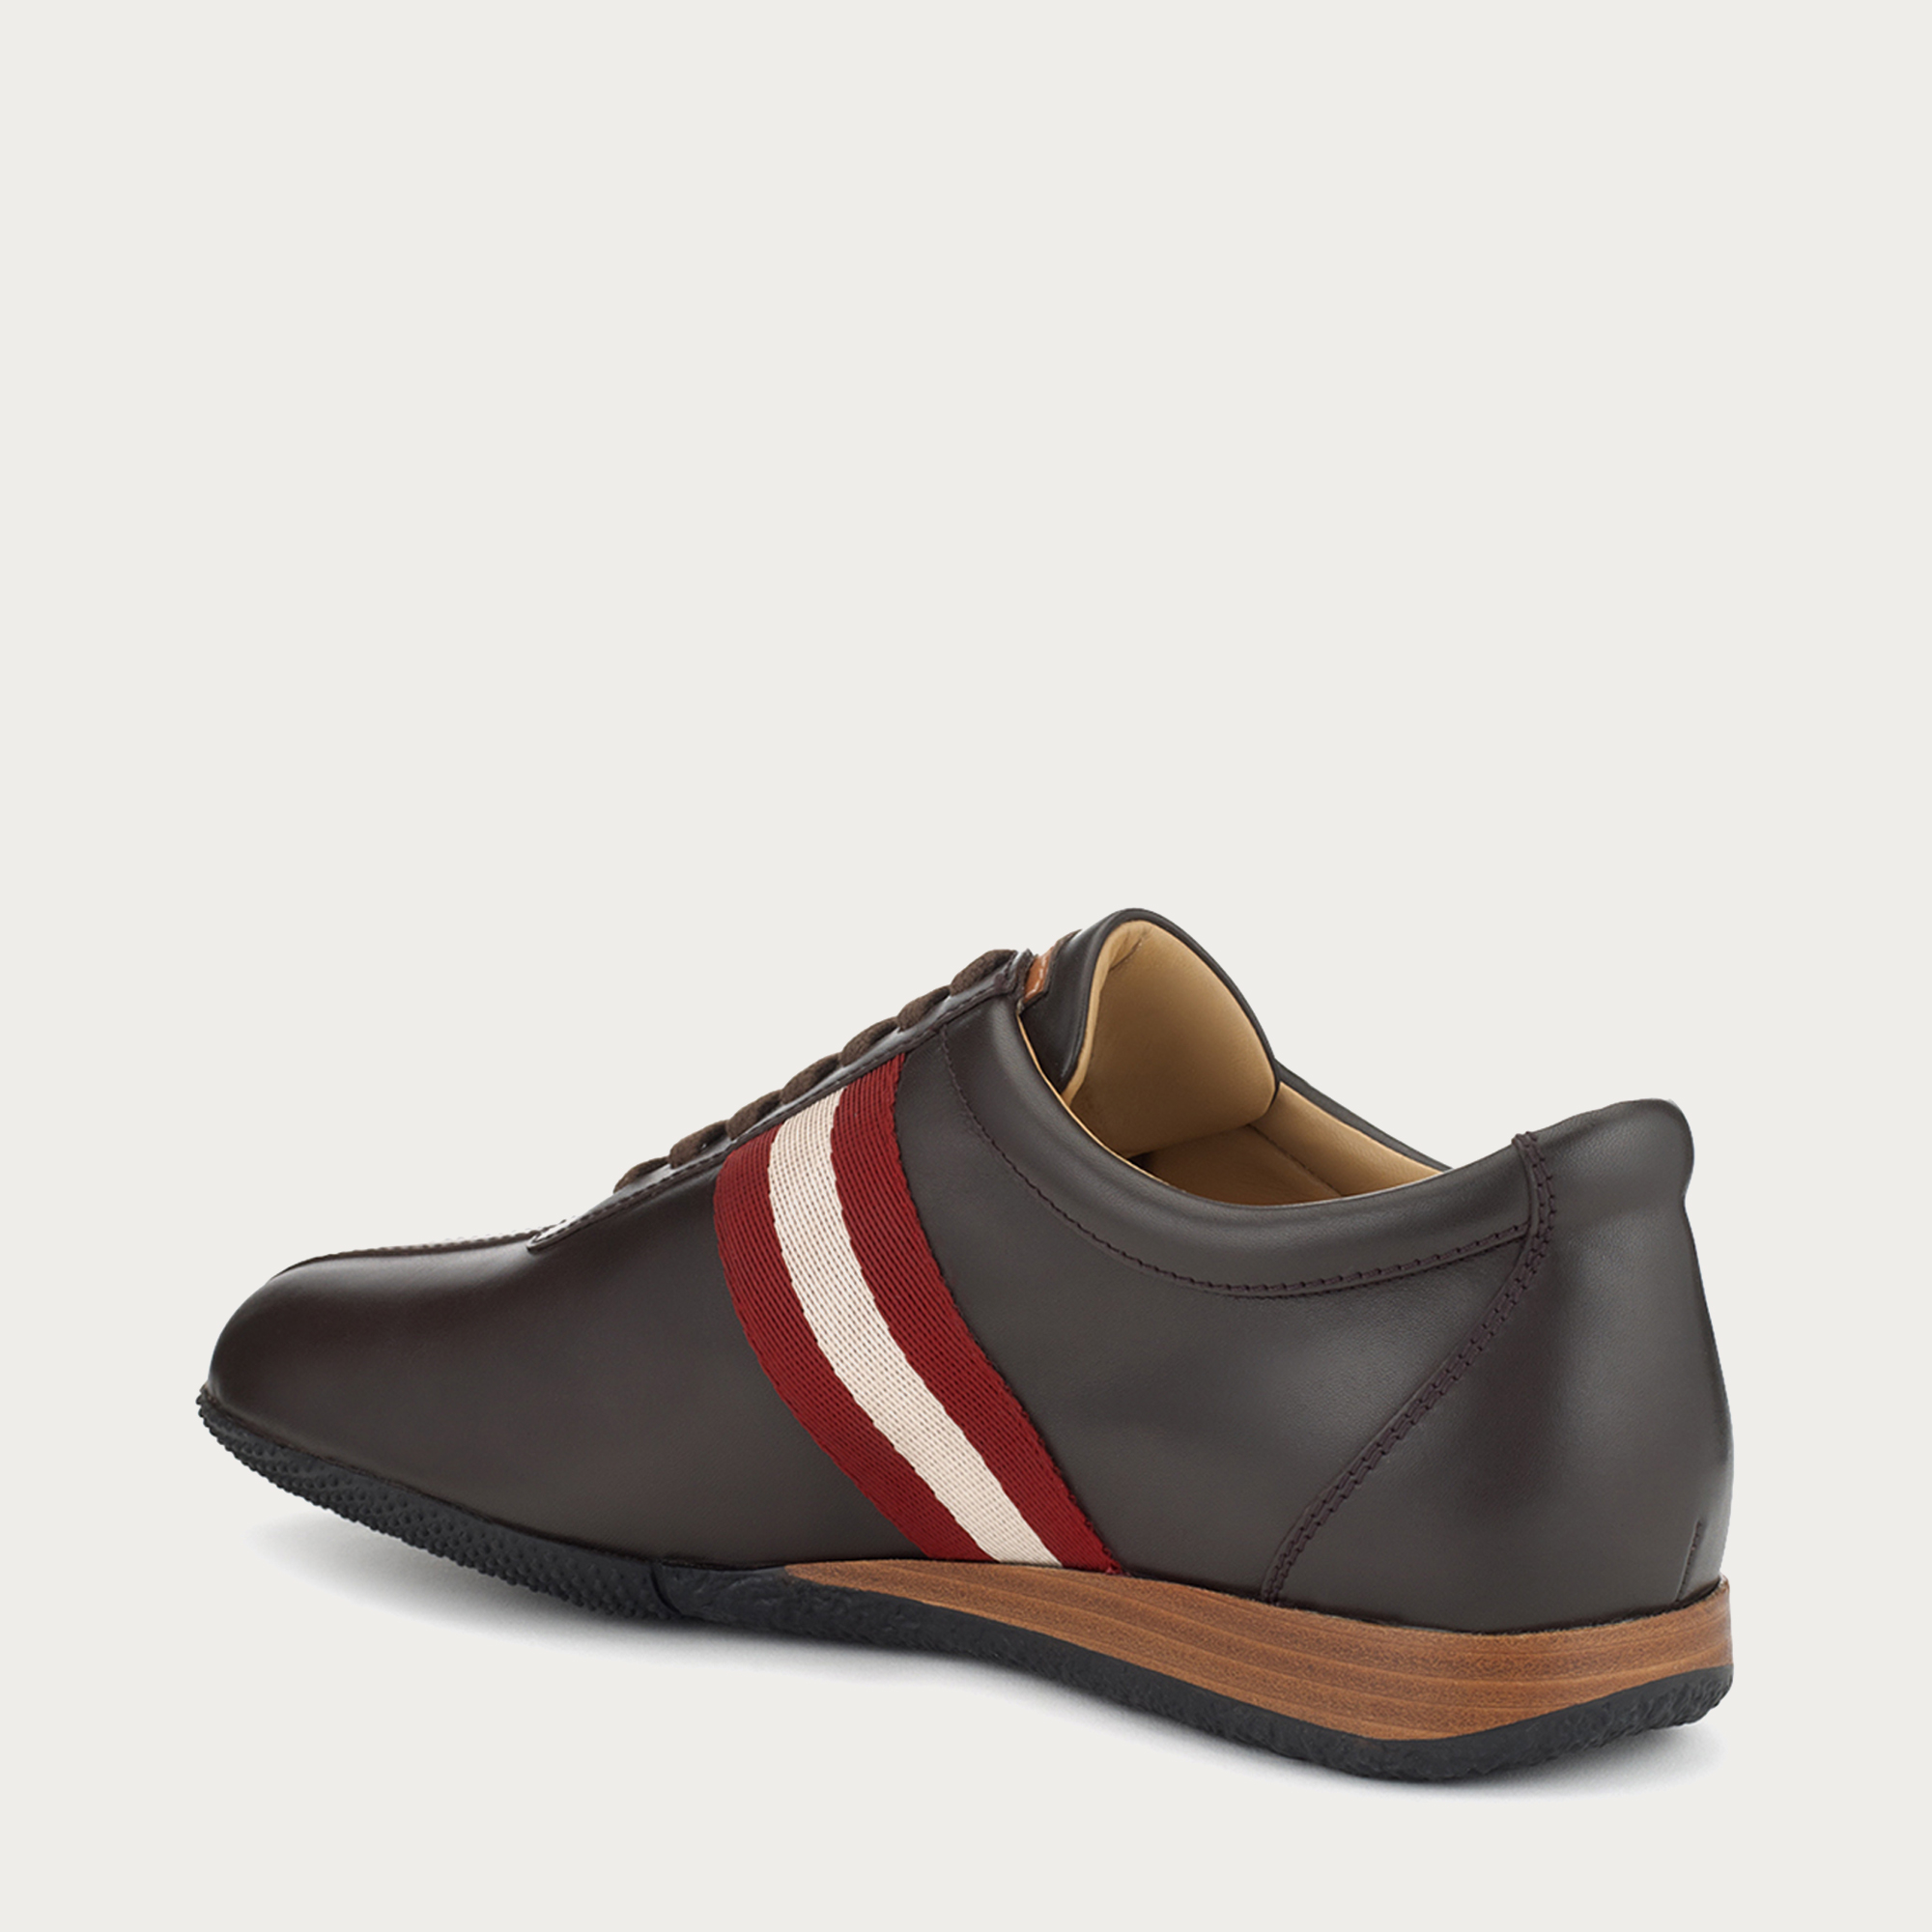 Bally Shoes Men